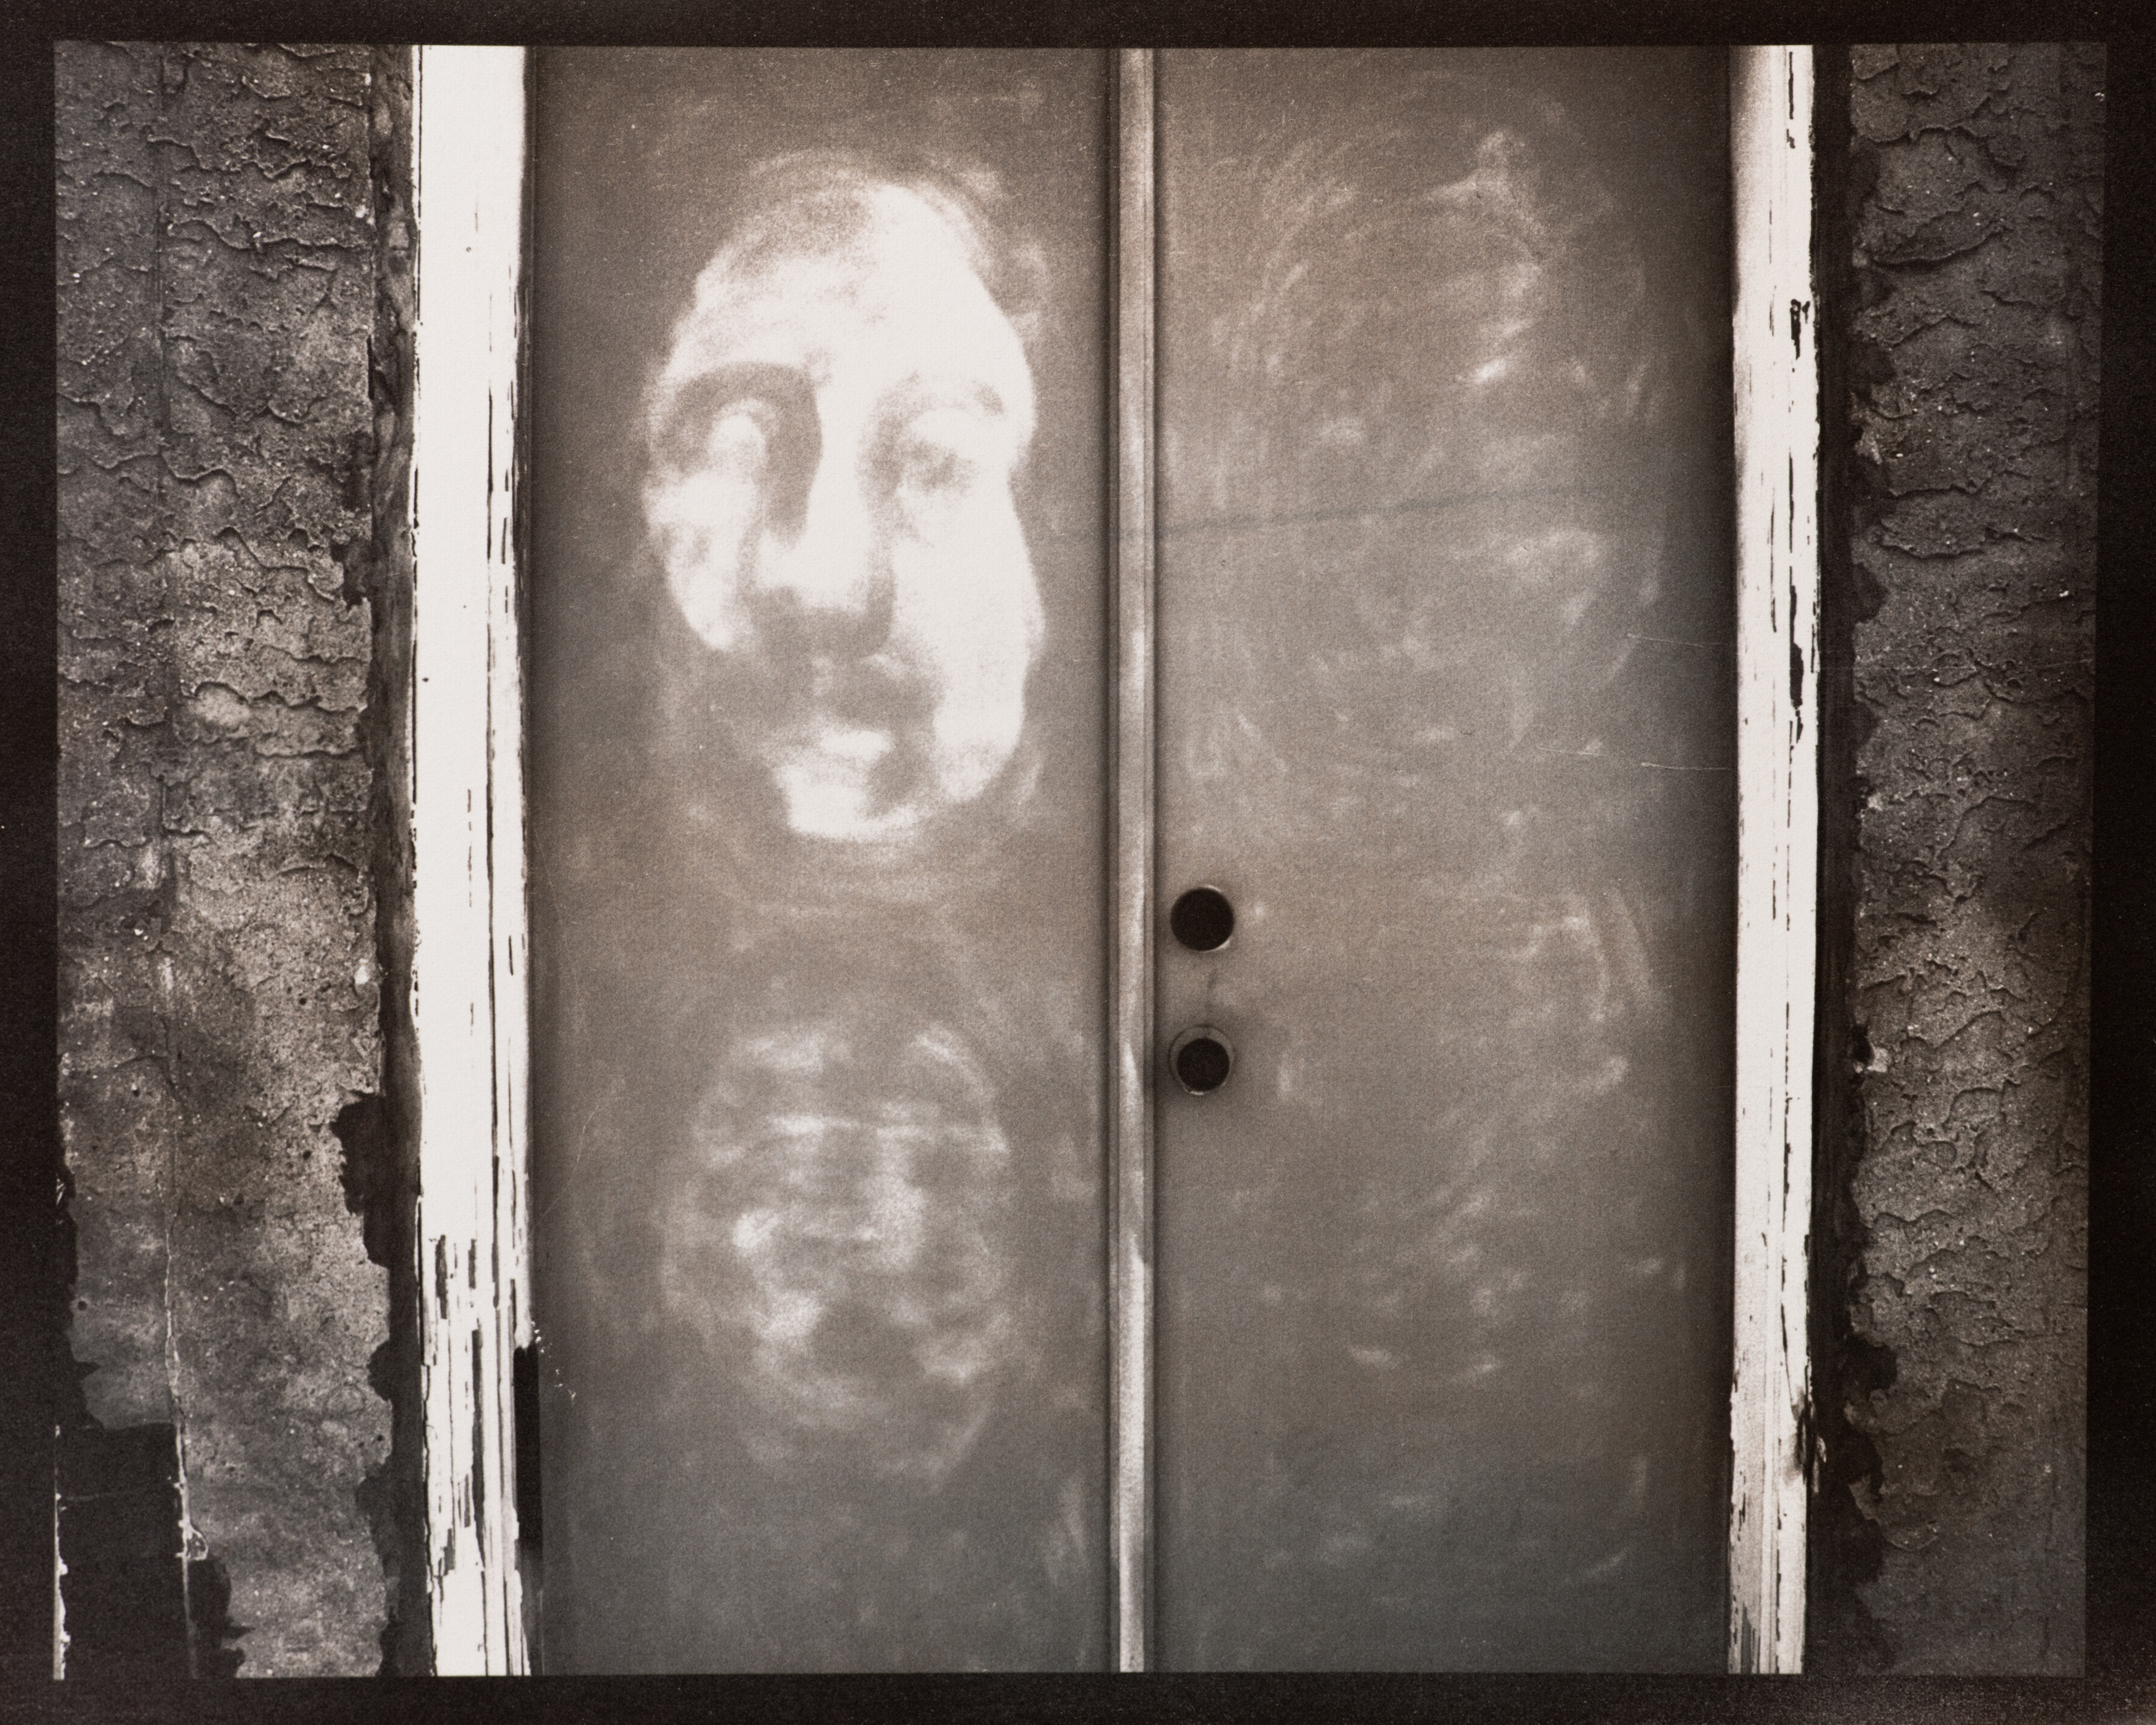 Faces on a Doorway